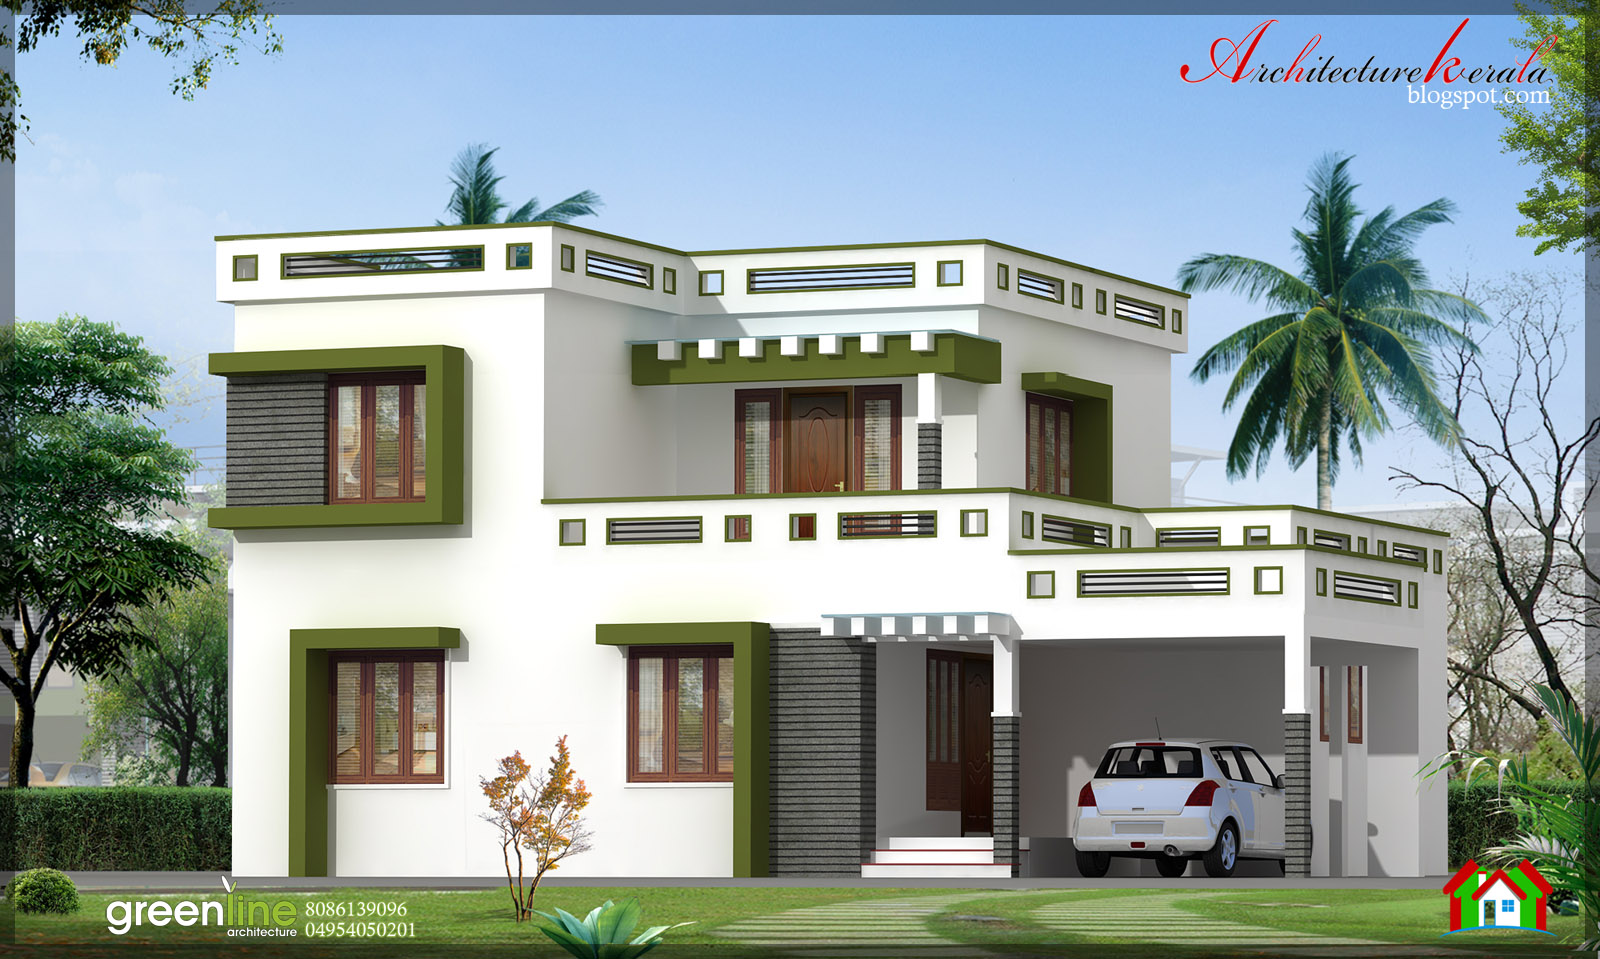 Architecture Kerala 3 BHK NEW MODERN STYLE KERALA HOME DESIGN IN